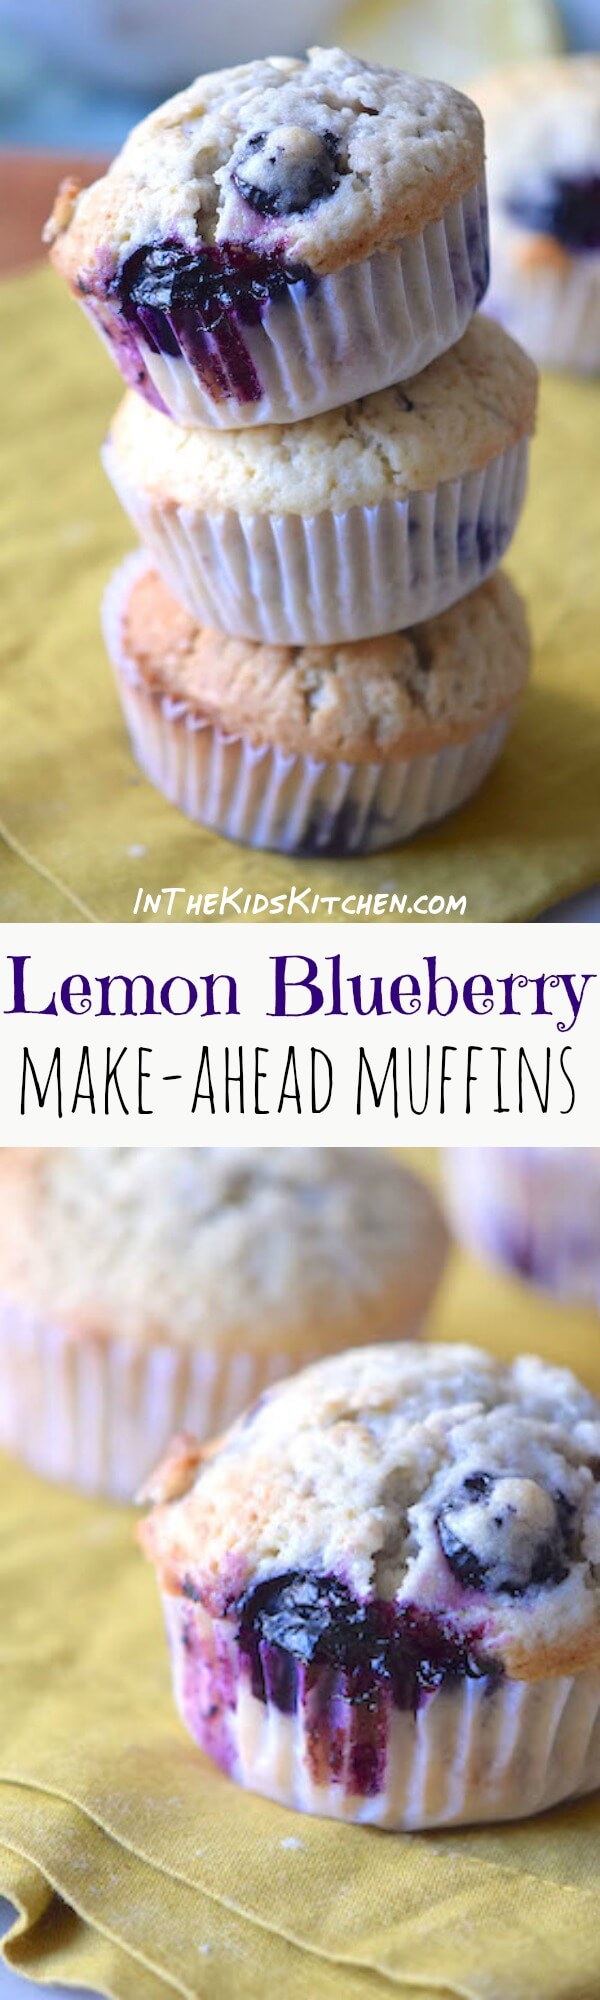 Lemon Blueberry Muffins are bursting with fresh blueberries and a hint of zesty citrus. Perfect to make-ahead and freeze for an easy breakfast or dessert!